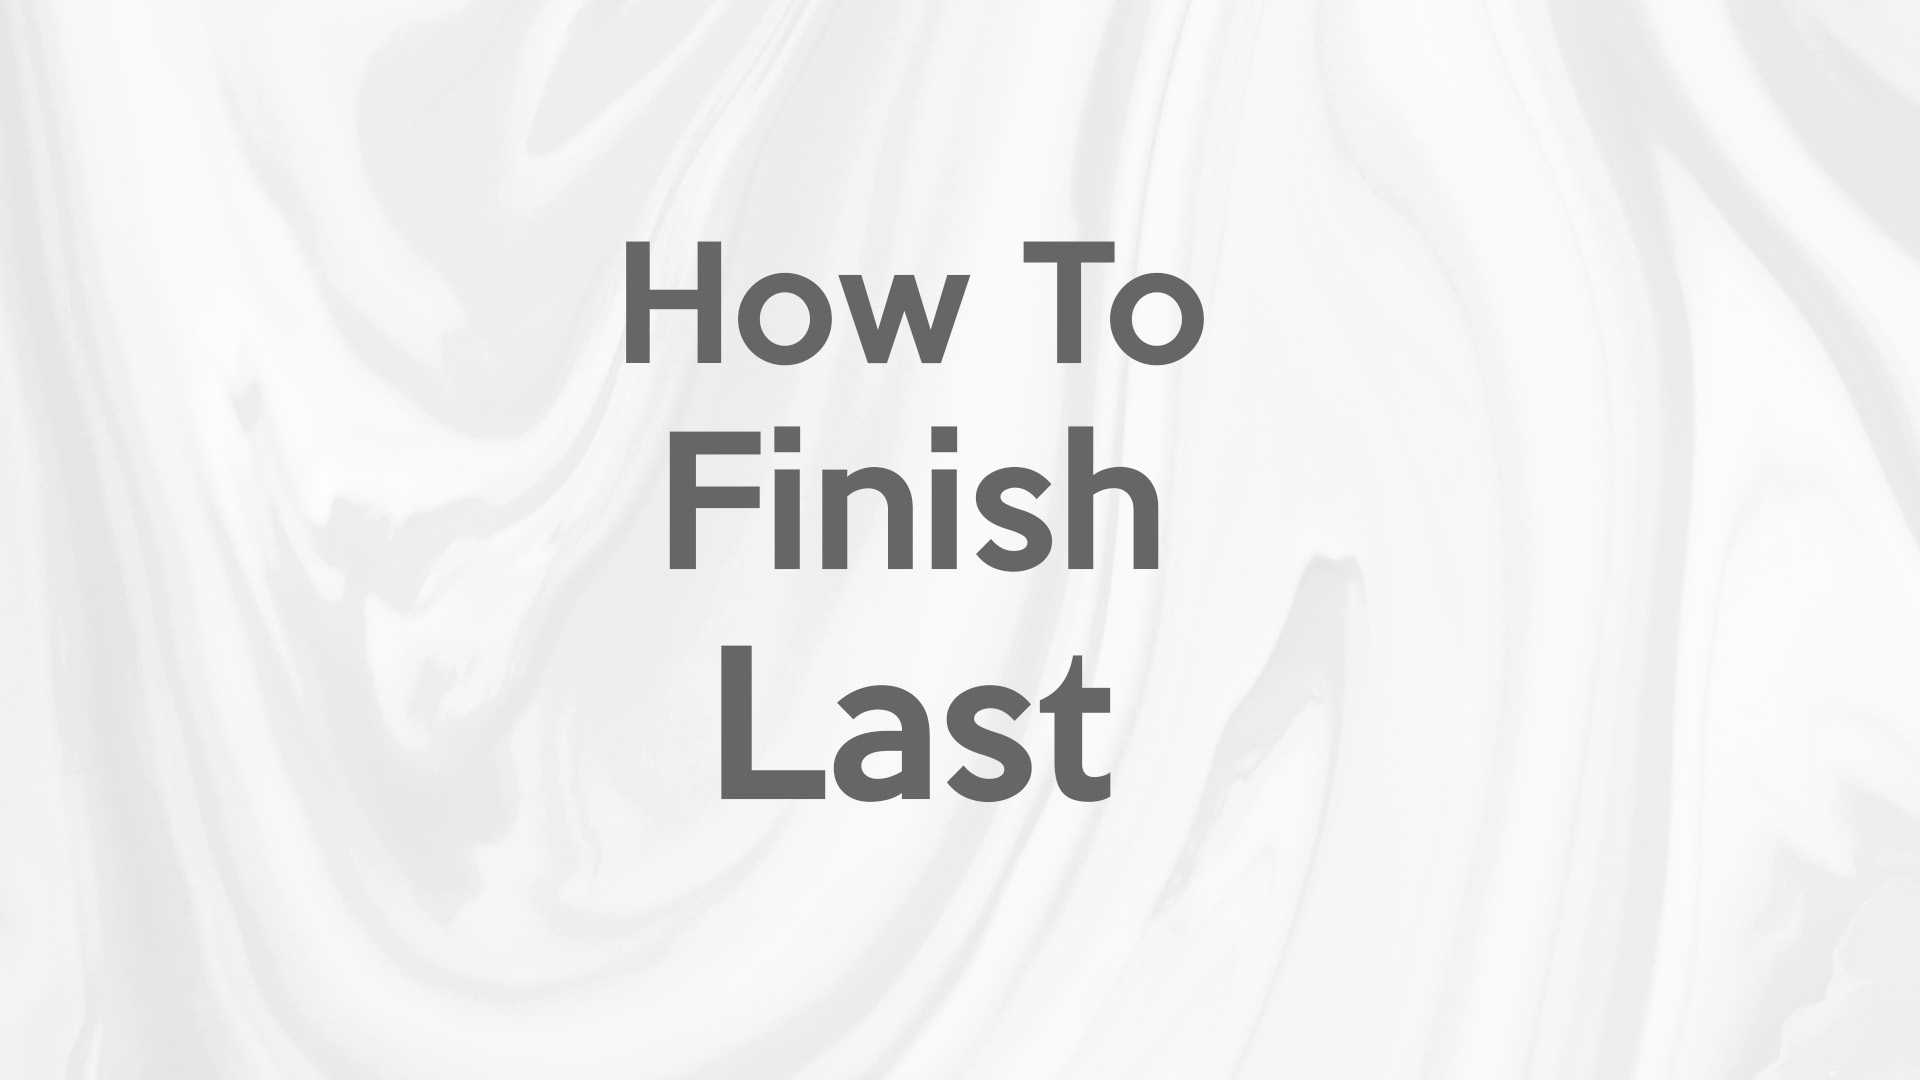 How to Finish Last